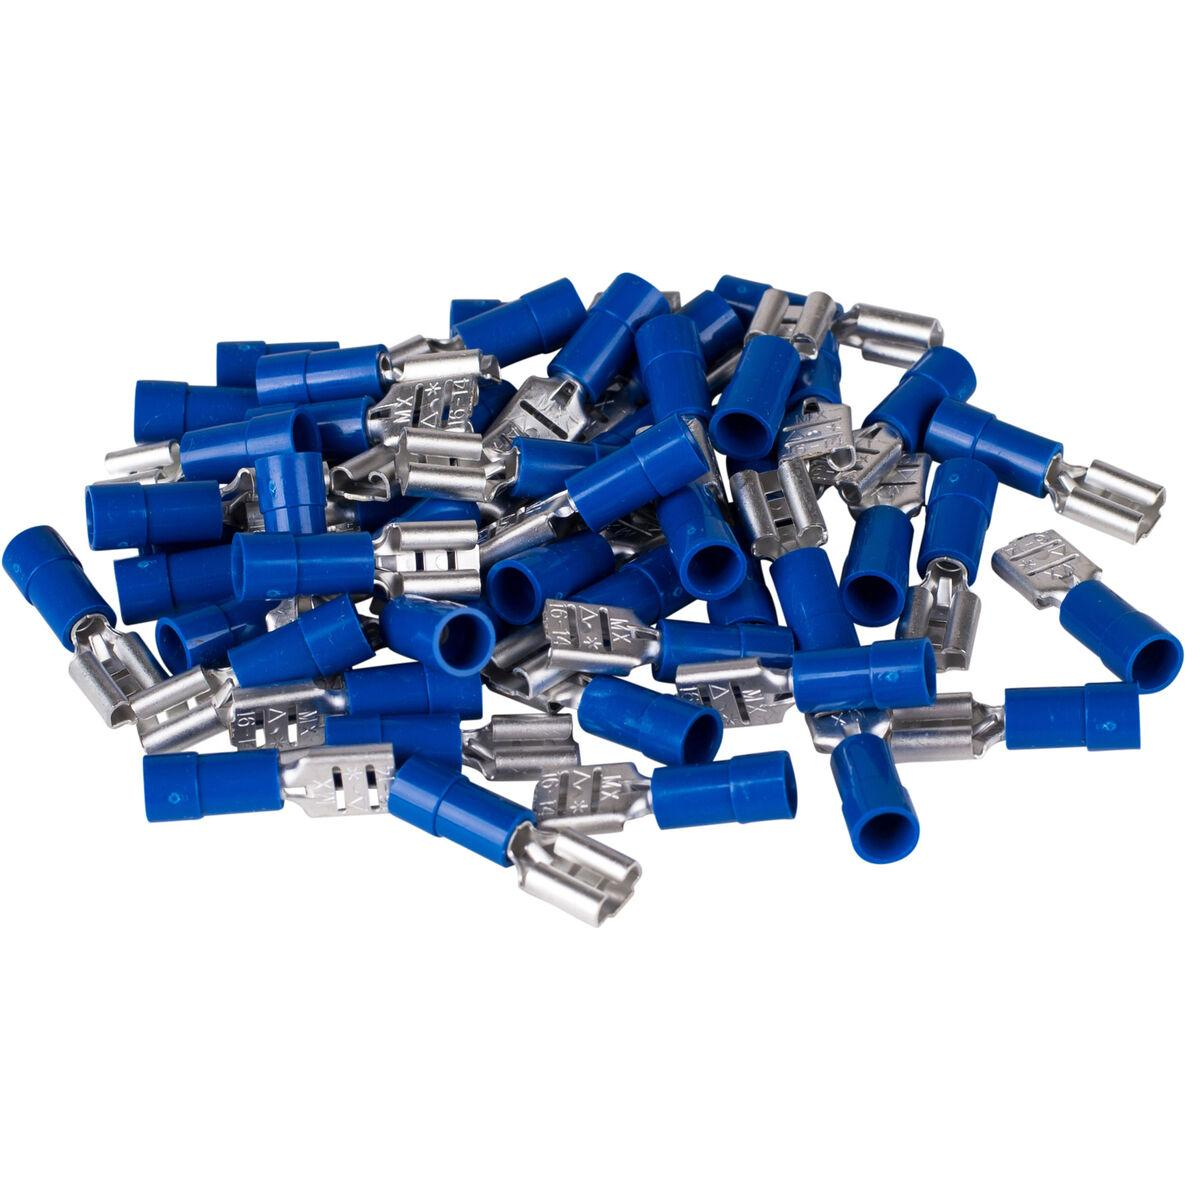 50 Non Insulated Female Flag Terminal Connectors 22-18 Wire AWG .250 Tab Molex for sale online